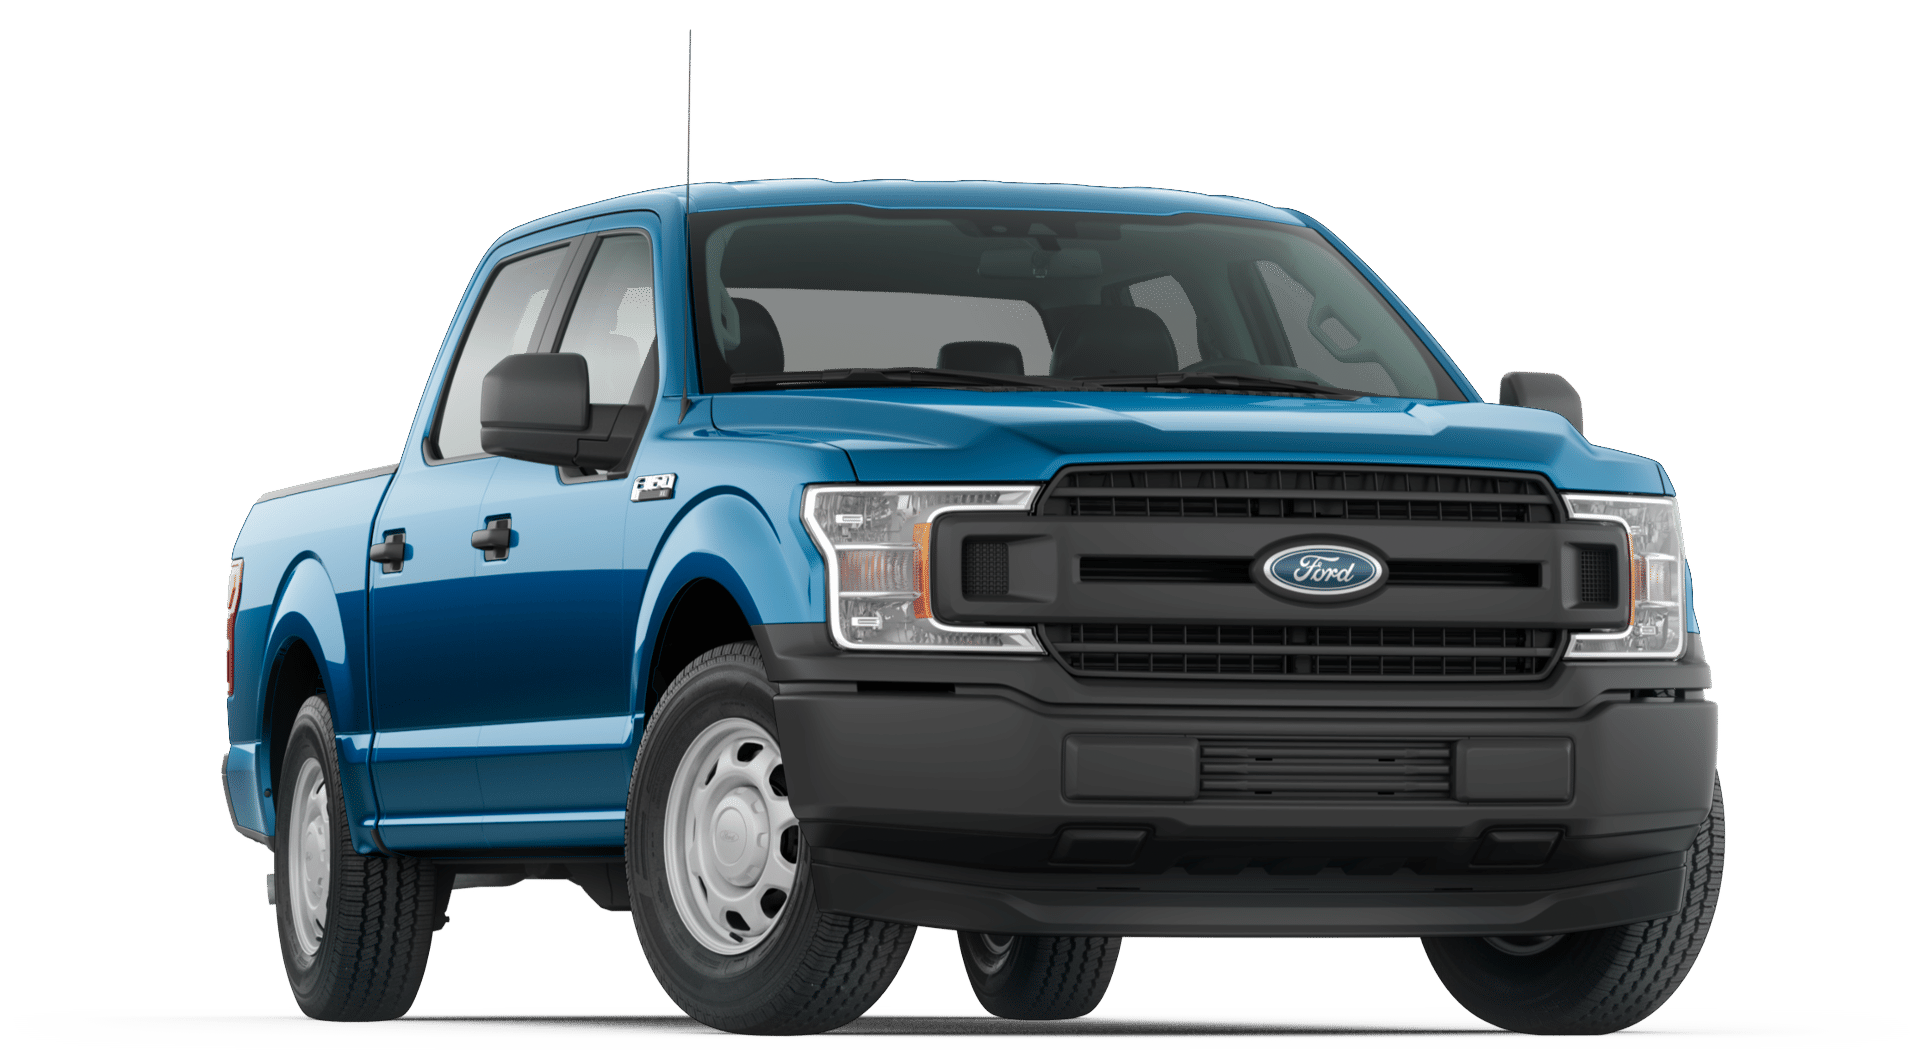 Georgetown Ford - 2020 Ford F-150 SuperCrew 5.5